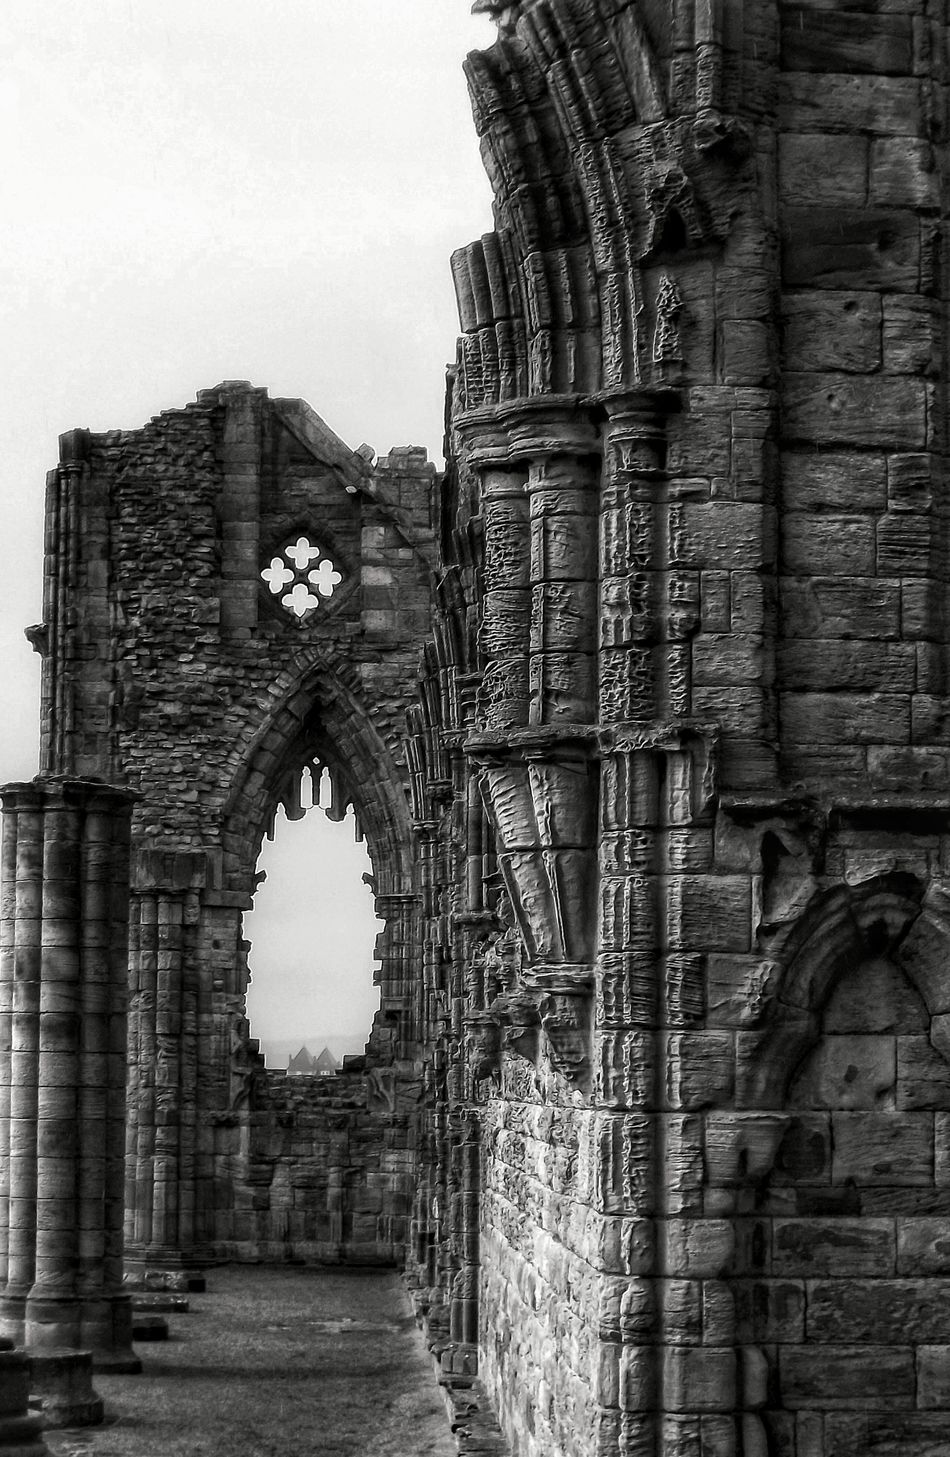 Took this on a very cold and rainy day at Whitby Abbey a lovely place to visit when it's sunny Historic Black And White Portrait Monochrome Black And White Collection  Eyeem Black And White Photography Black And White Scenery Bnw_collection Creative Light And Shadow Gray Day Black & White Monochrome Black & White Photography Whitby HDR See The World Through My Eyes Eye For Photography Hdr_Collection Fujifilm Showcase April EyeEm Hdr-Collection EyeEm Masterclass Scenery Shot Whitby Abbey Whitby Abby Whitby View Architecture_collection